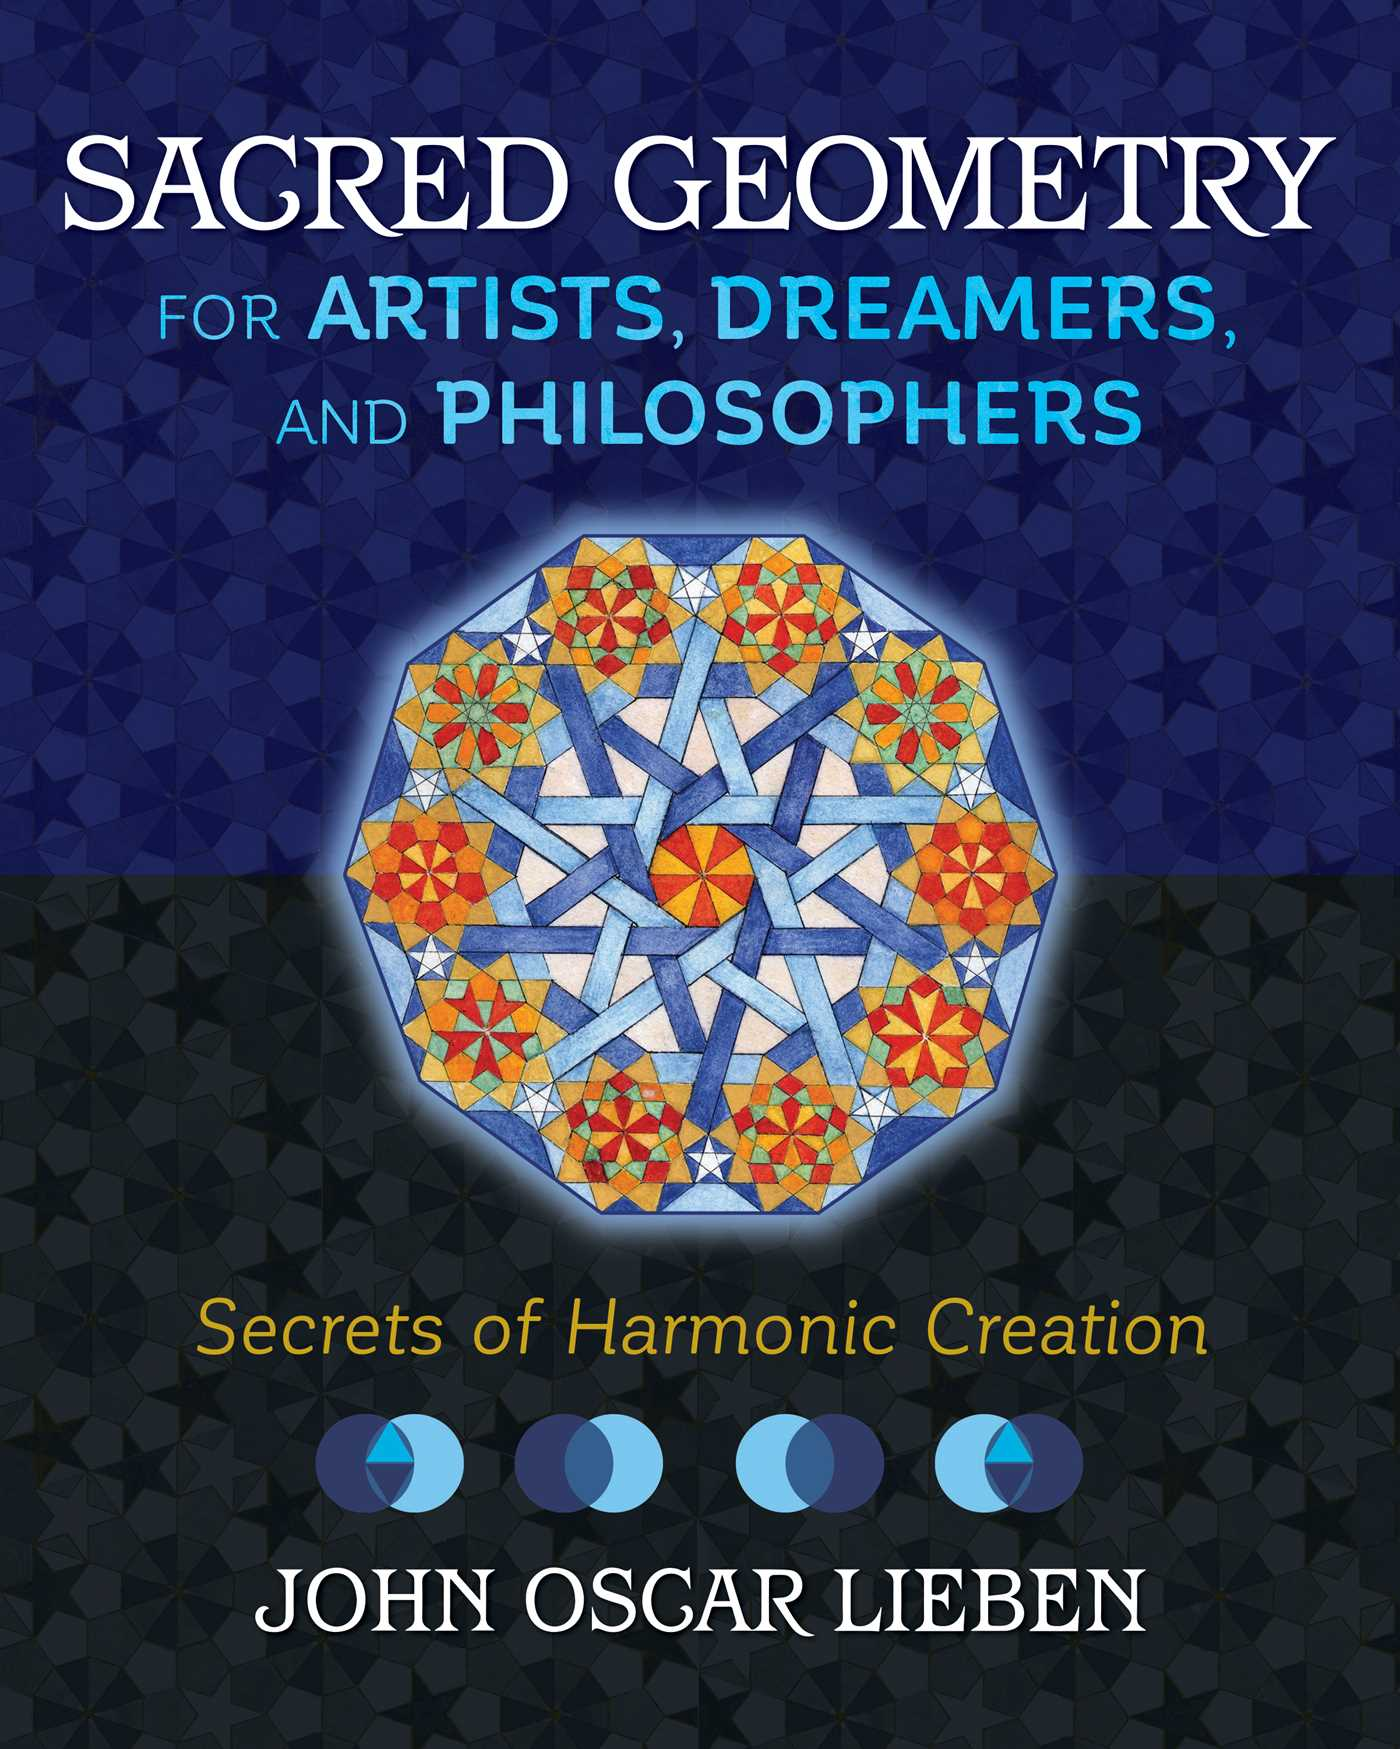 Sacred geometry for artists dreamers and philosophers 9781620557013 hr